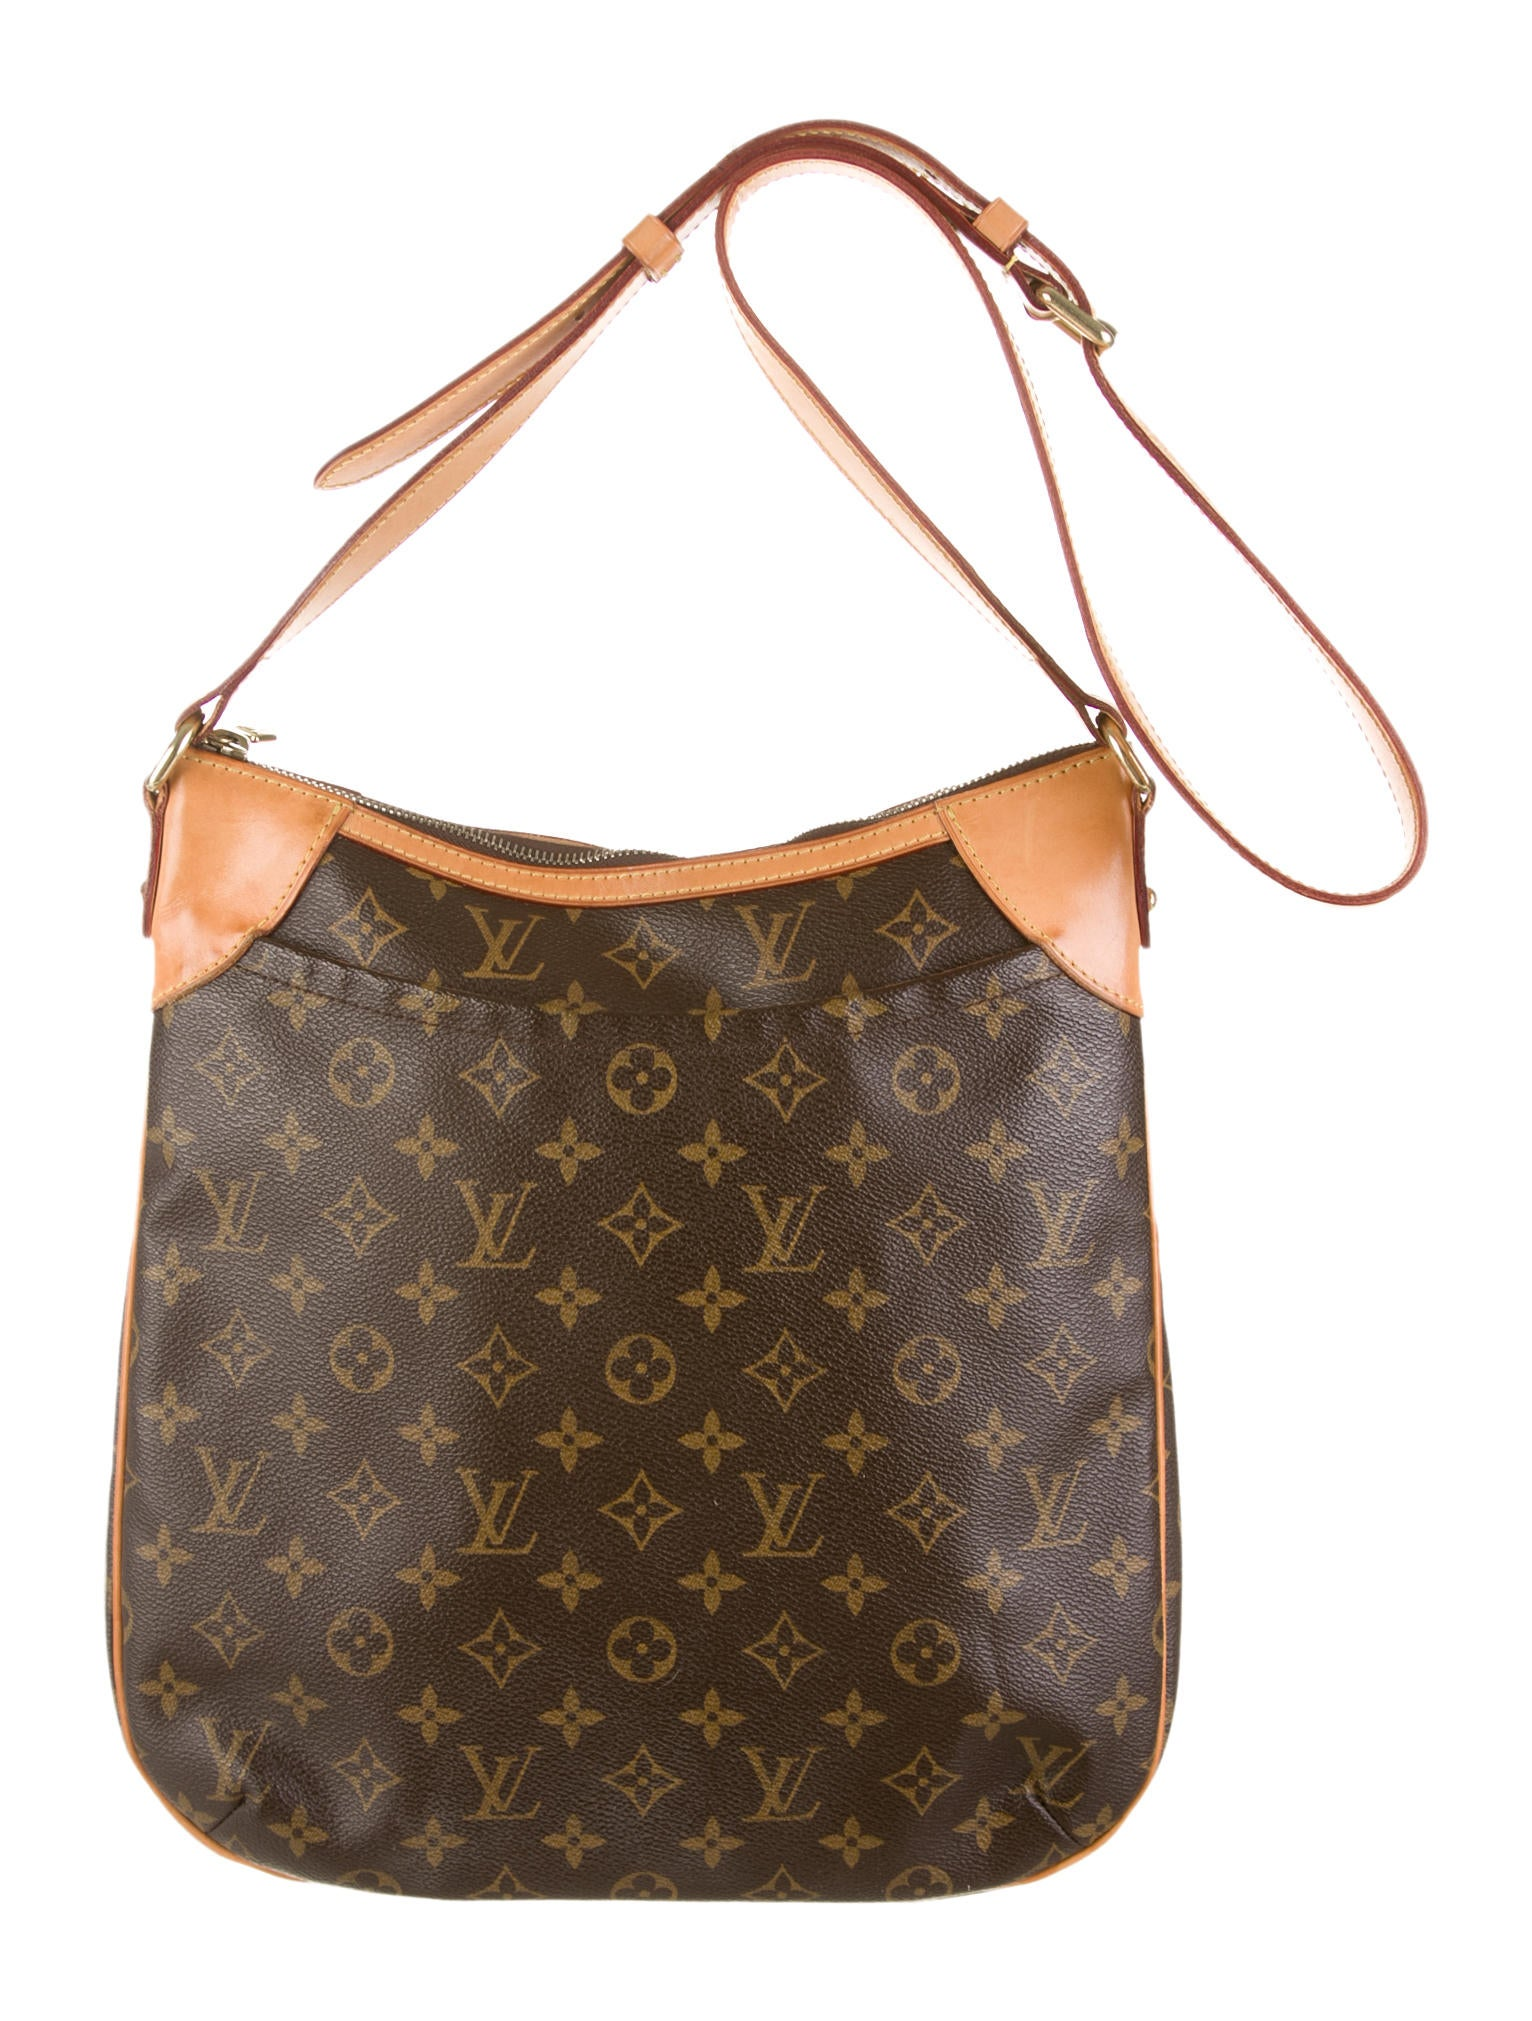 291662054e38 Louis Vuitton Odeon MM - Handbags - LOU34250